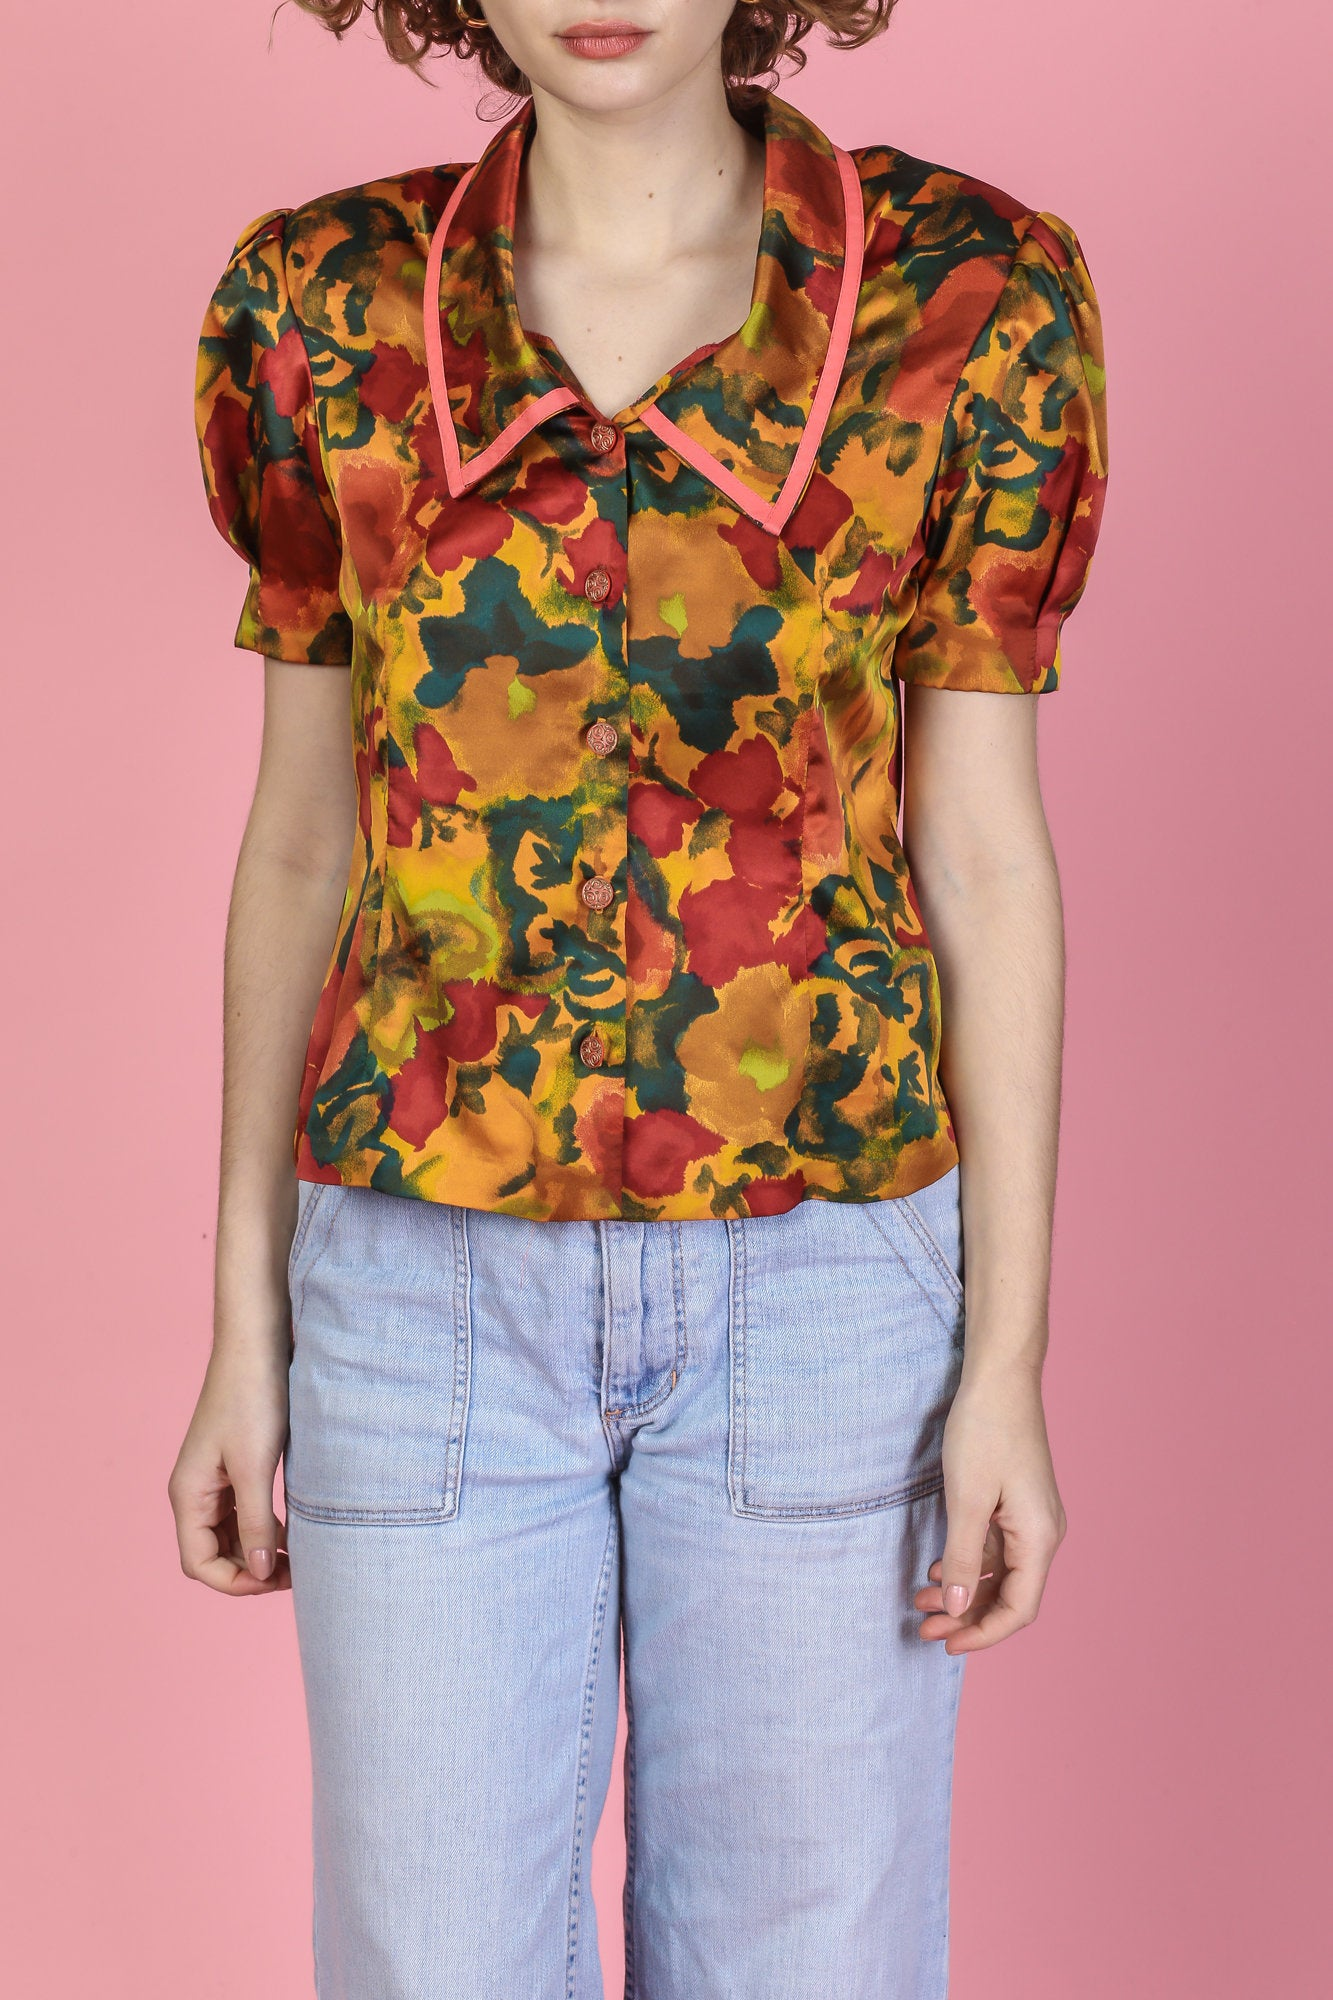 80s Fall Floral Cropped Blouse - Medium